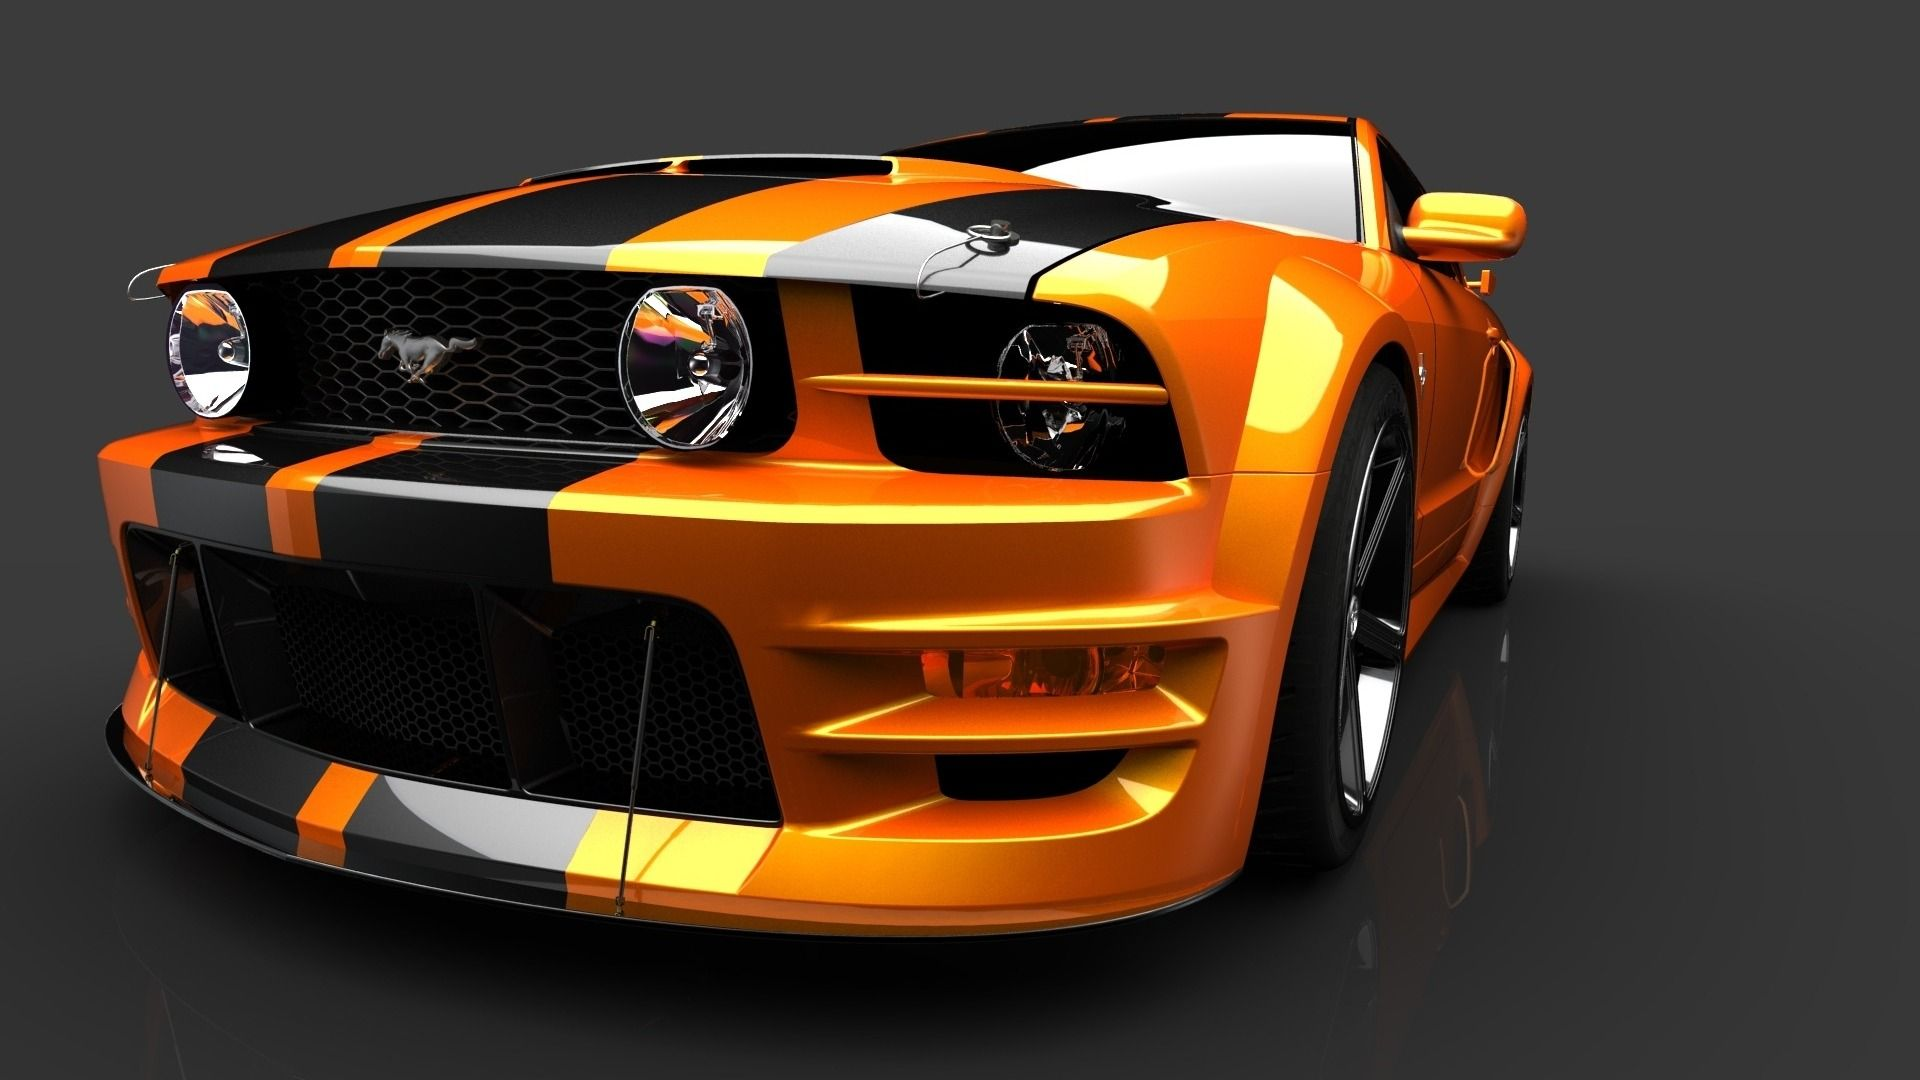 Mustang Hd Wallpapers Top Free Mustang Hd Backgrounds